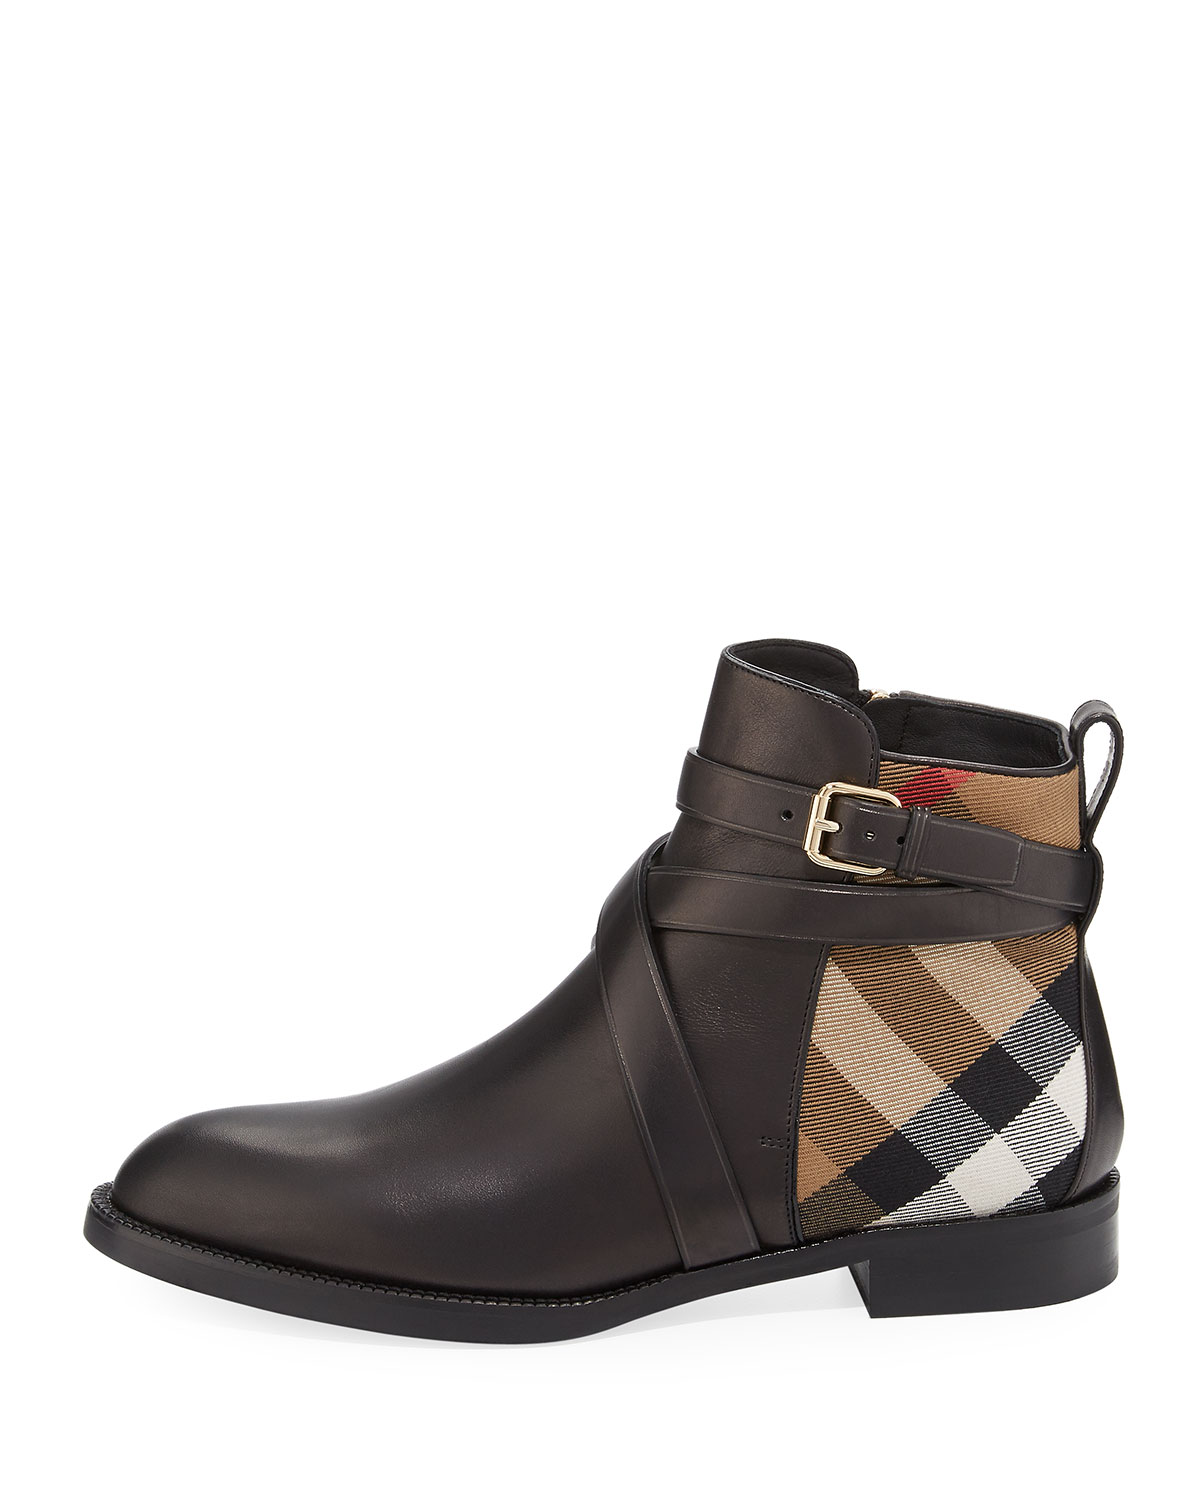 Vaughan check boots Burberry Free Shipping Shop Offer Clearance 2018 Newest Top Quality Cheap Price pG4a3Z